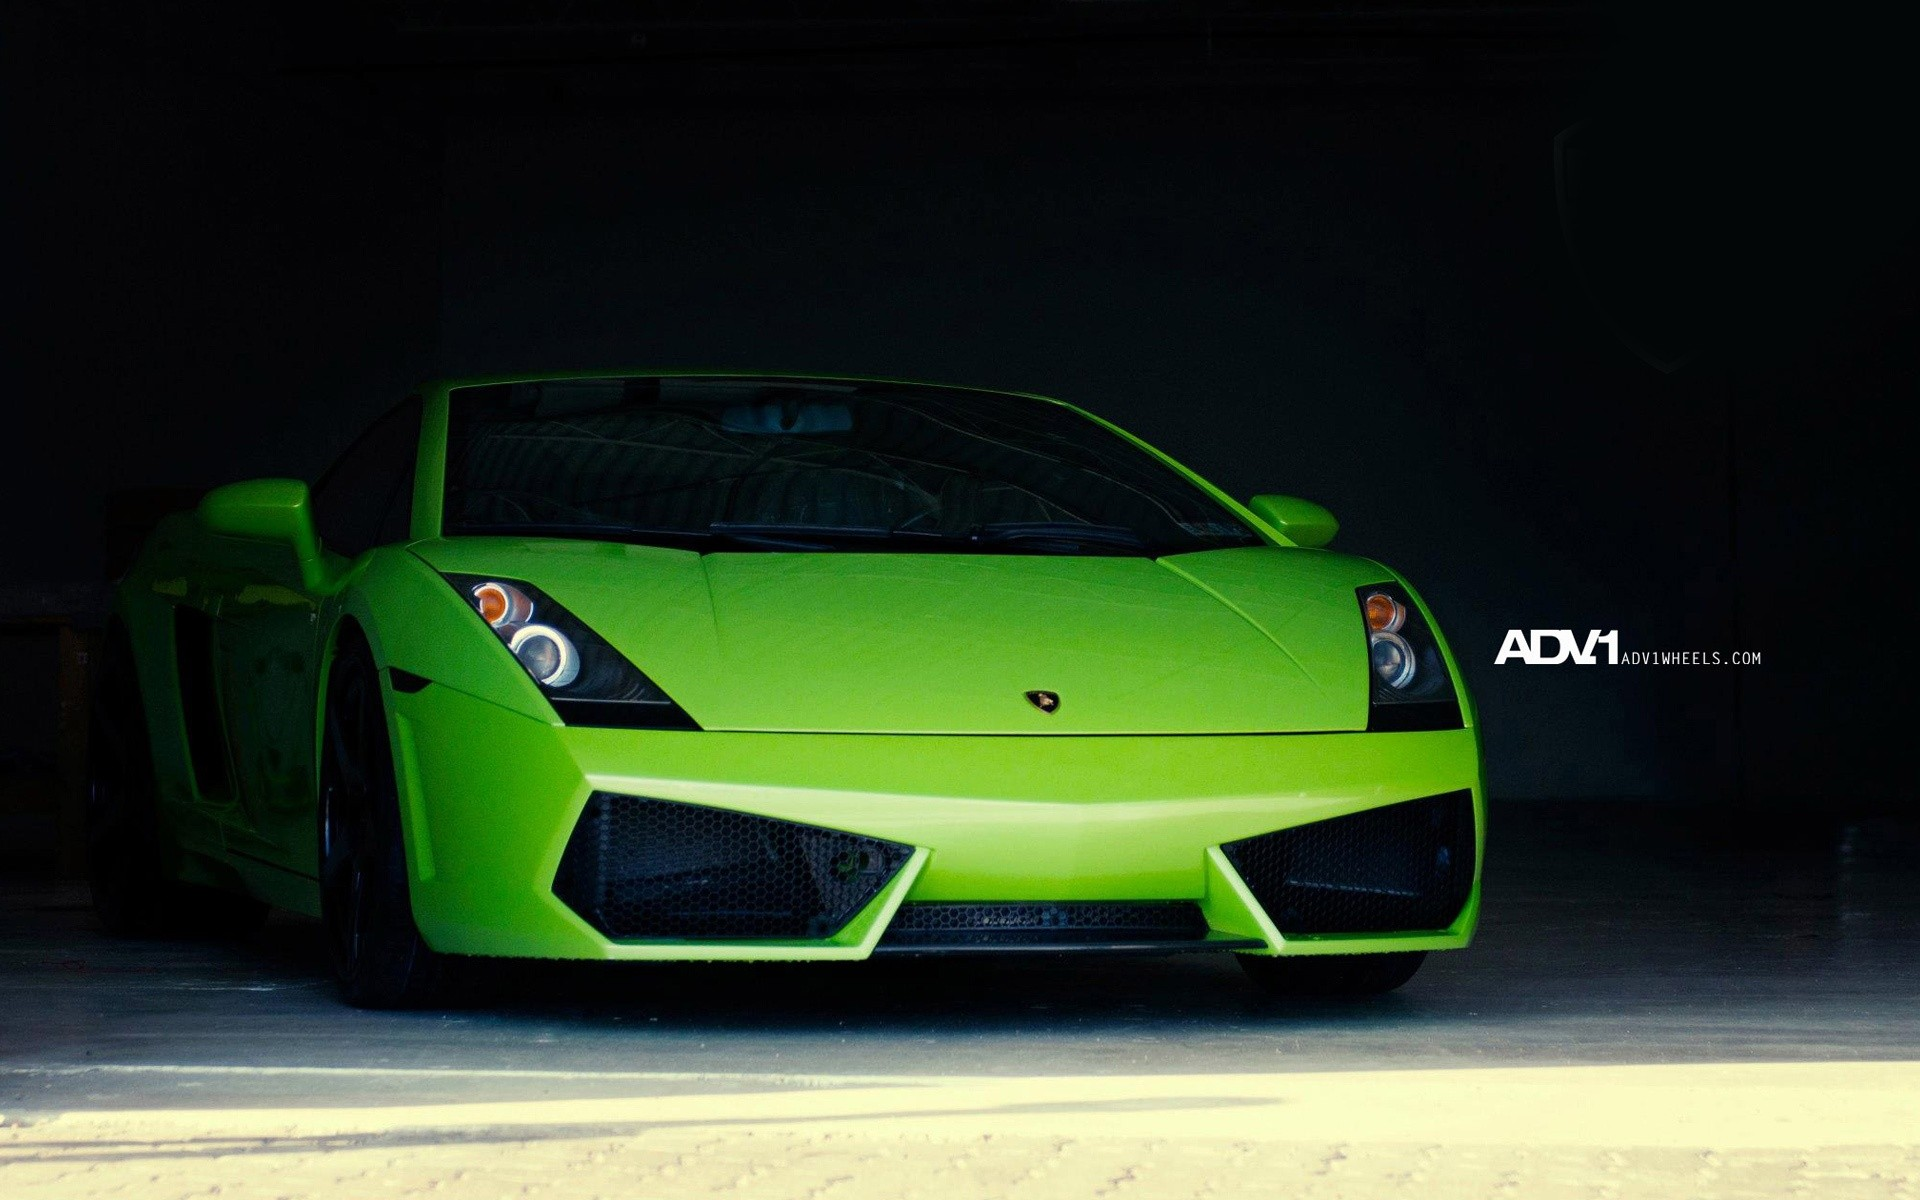 wallpaper green ferrari cars - photo #25